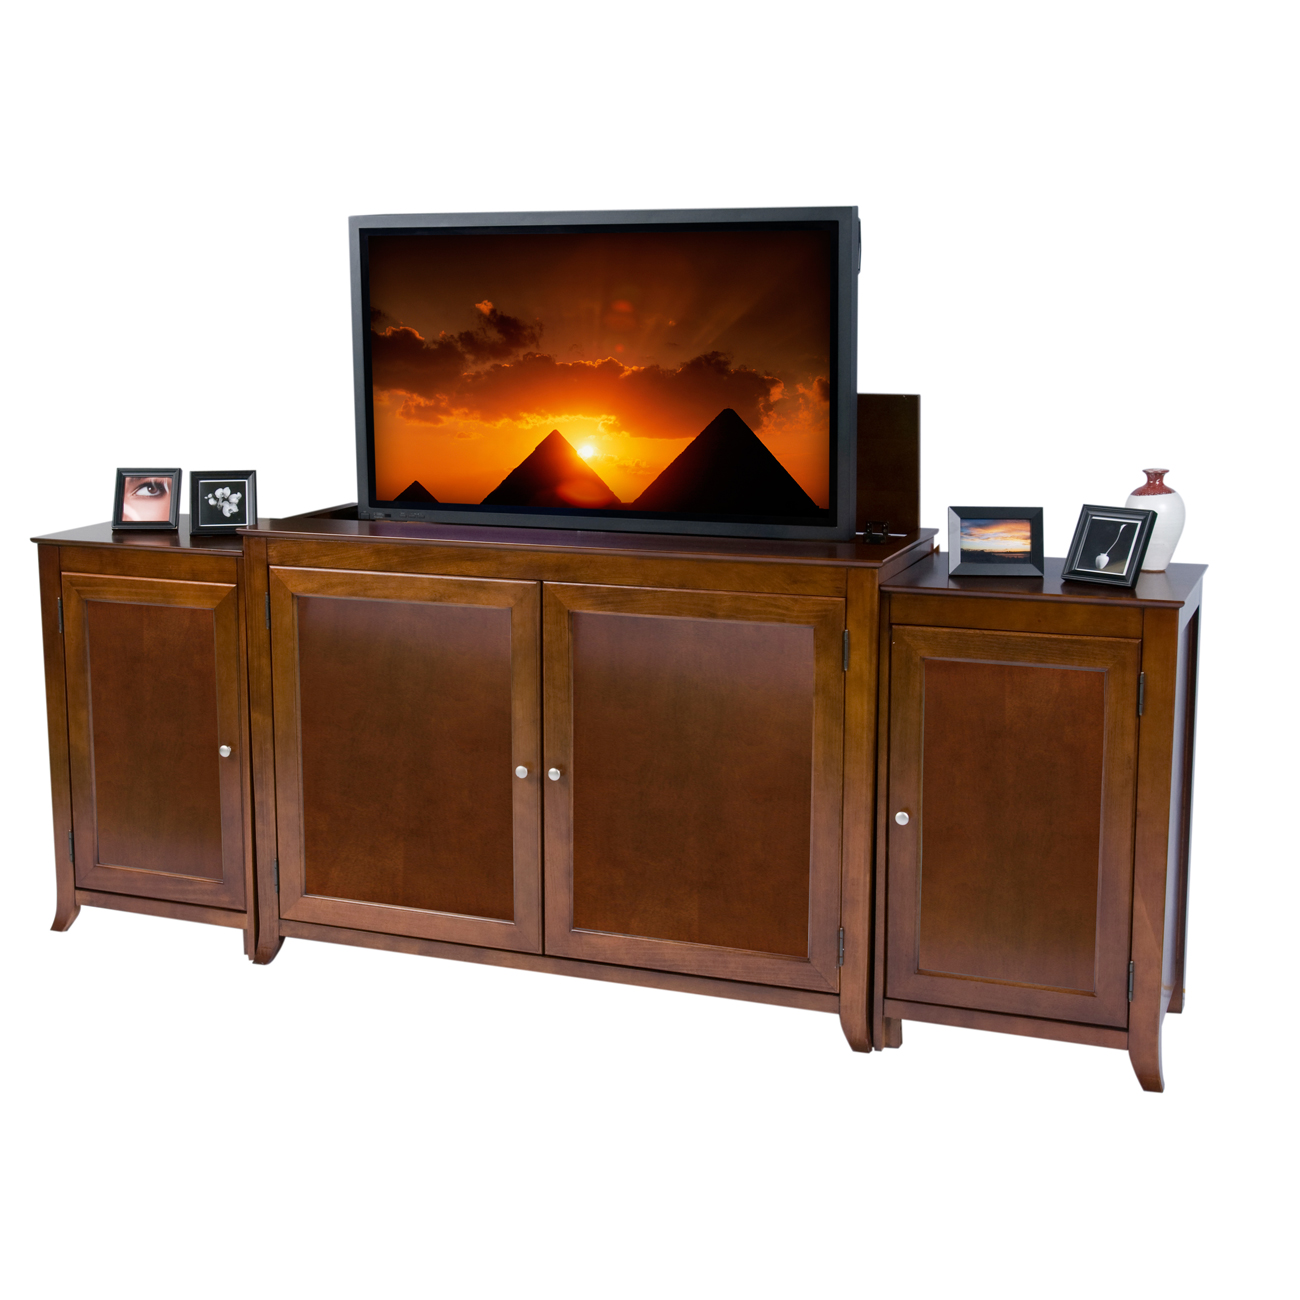 berkeley cherry tv lift cabinet with sides for flat screen tvs up to 60. Black Bedroom Furniture Sets. Home Design Ideas